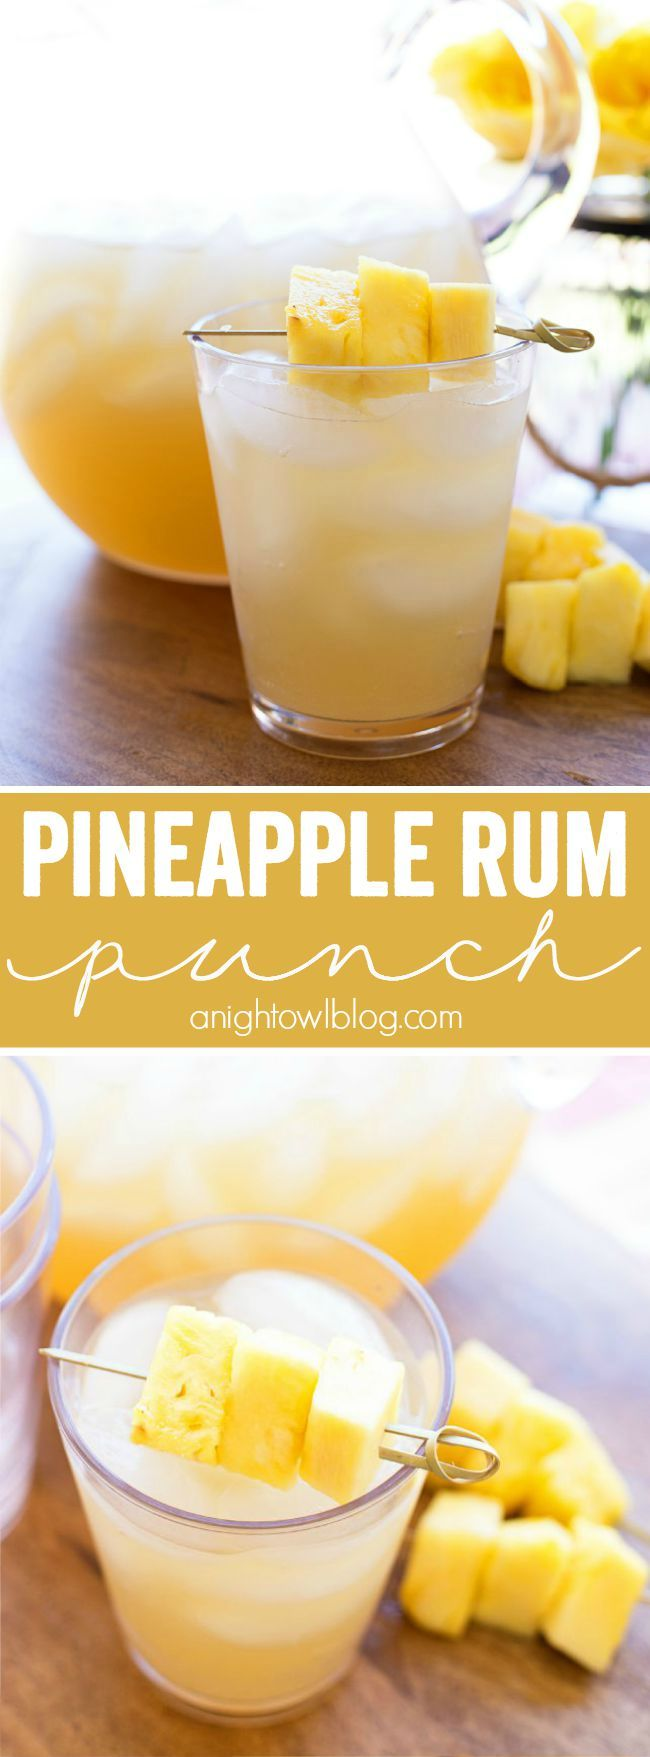 Pineapple Rum Punch | Recipe | Pineapple rum, Rum and Beverage